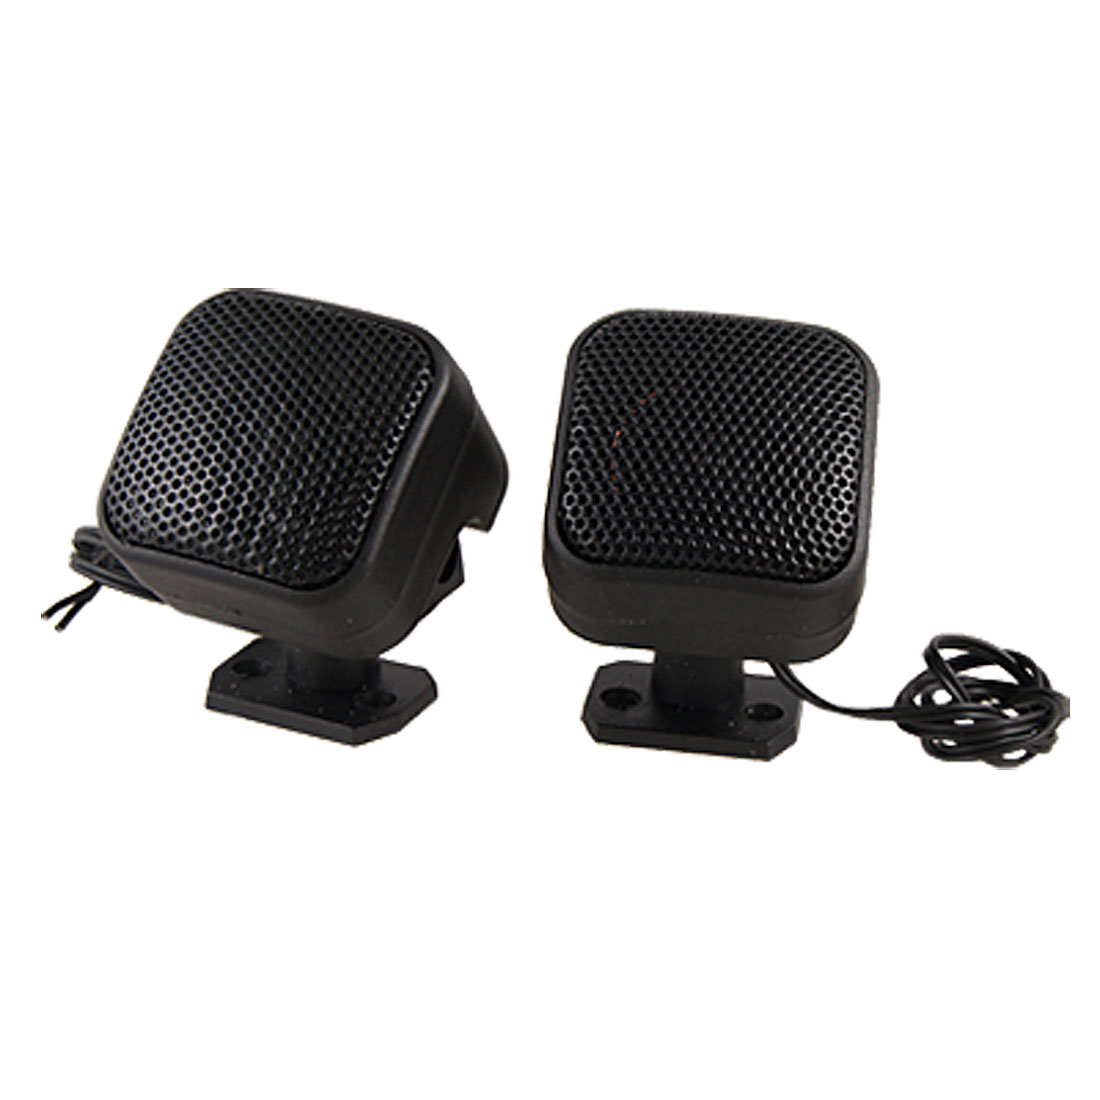 Auto Car Cubic Tweeters Audio Speakers Black 100-150W